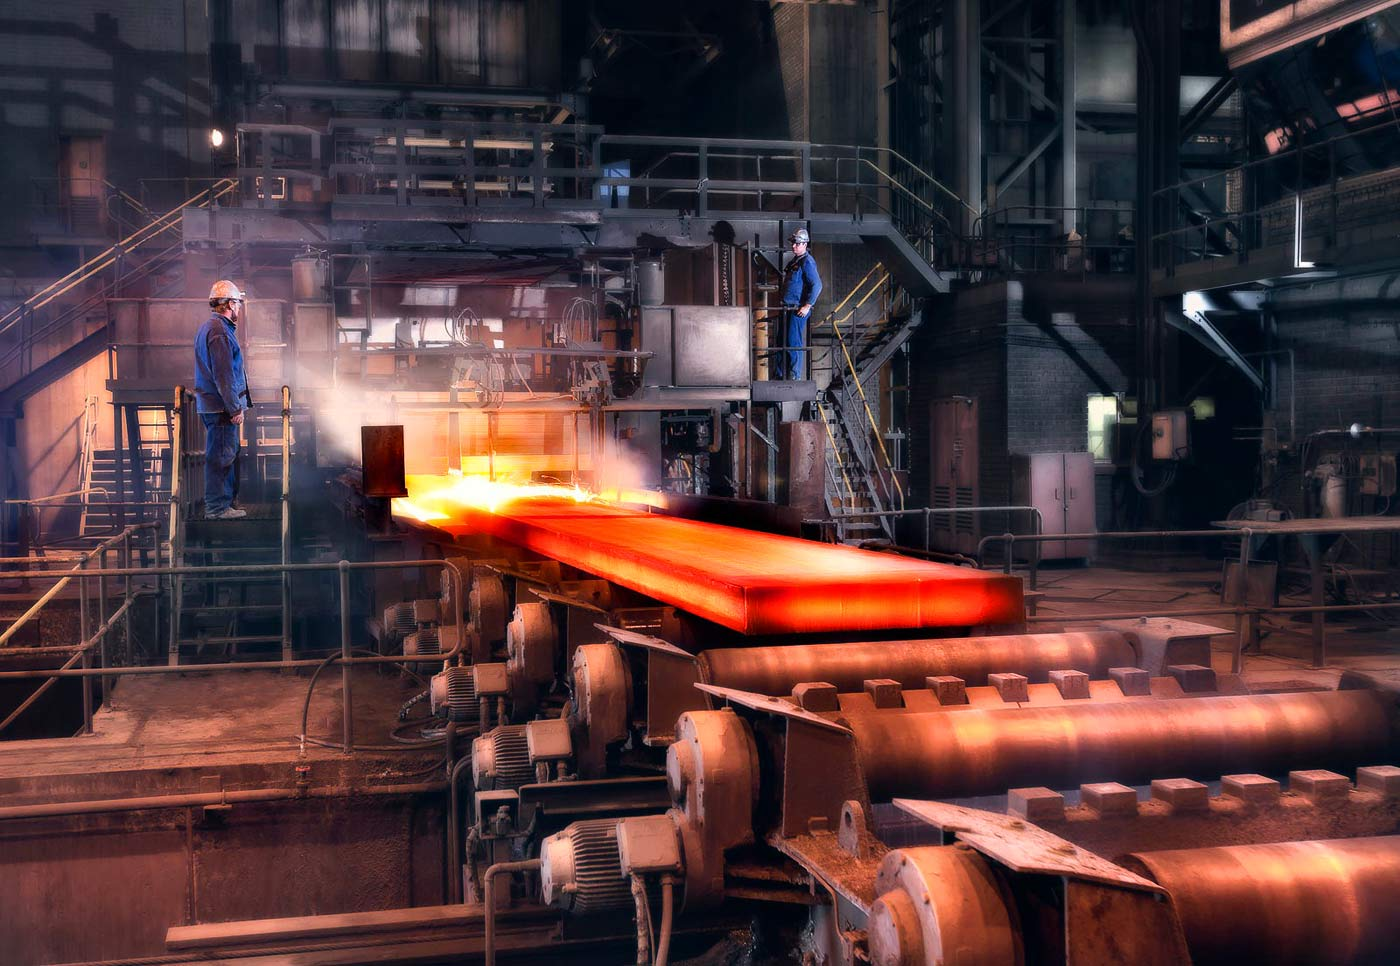 Stainless steel rolling mill taken by professional plant photographer